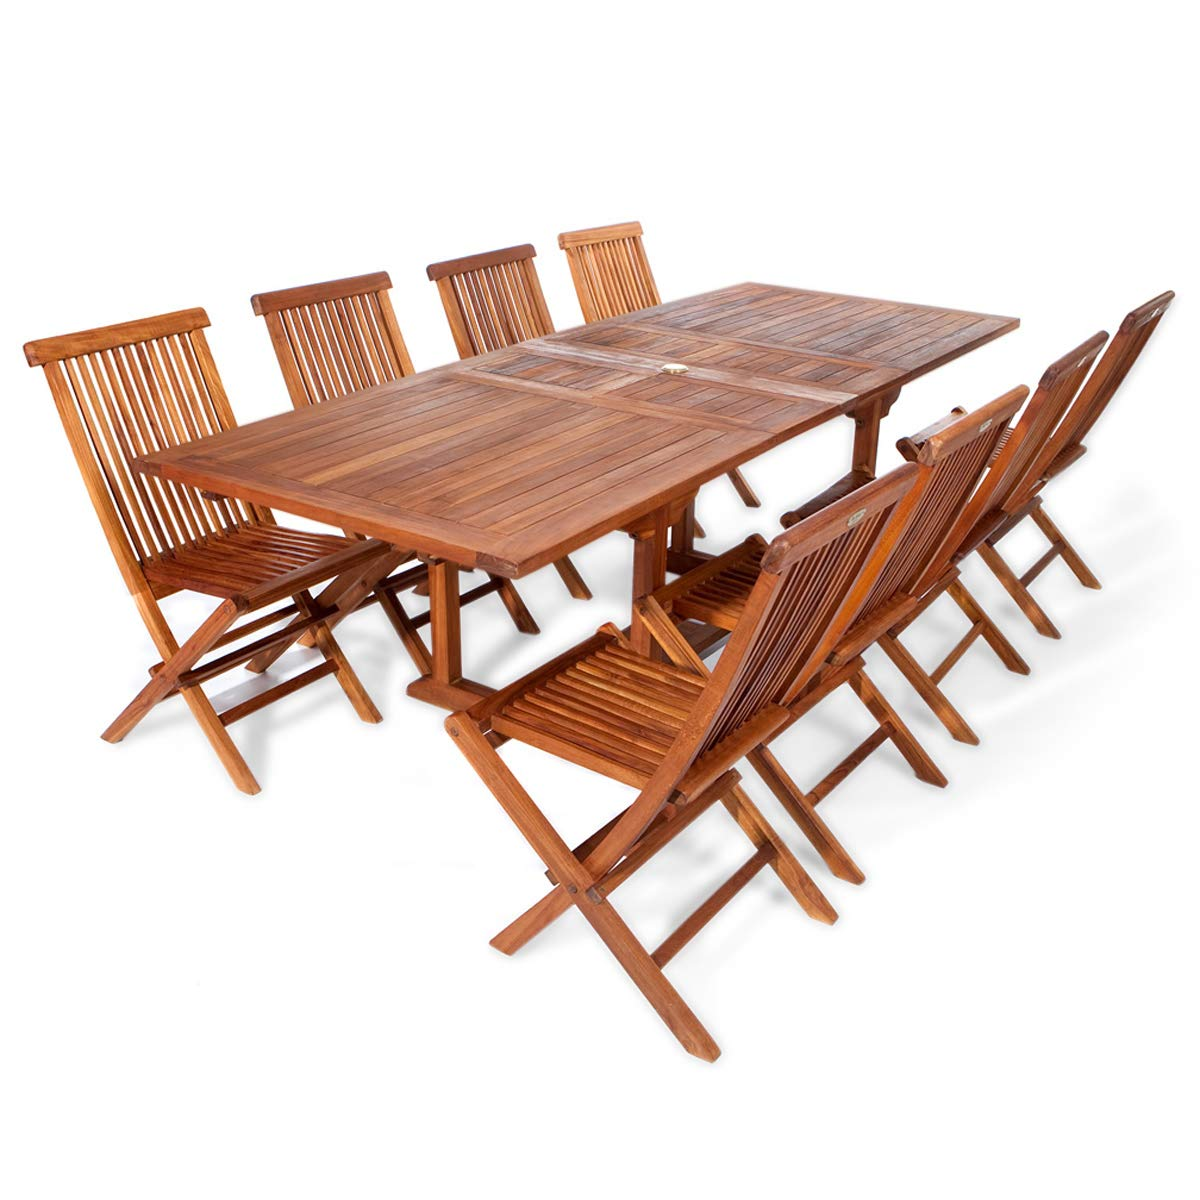 All Things Cedar TE90-22 Teak Rectangular Extension Patio Table with Folding Chairs Set, 9-Piece